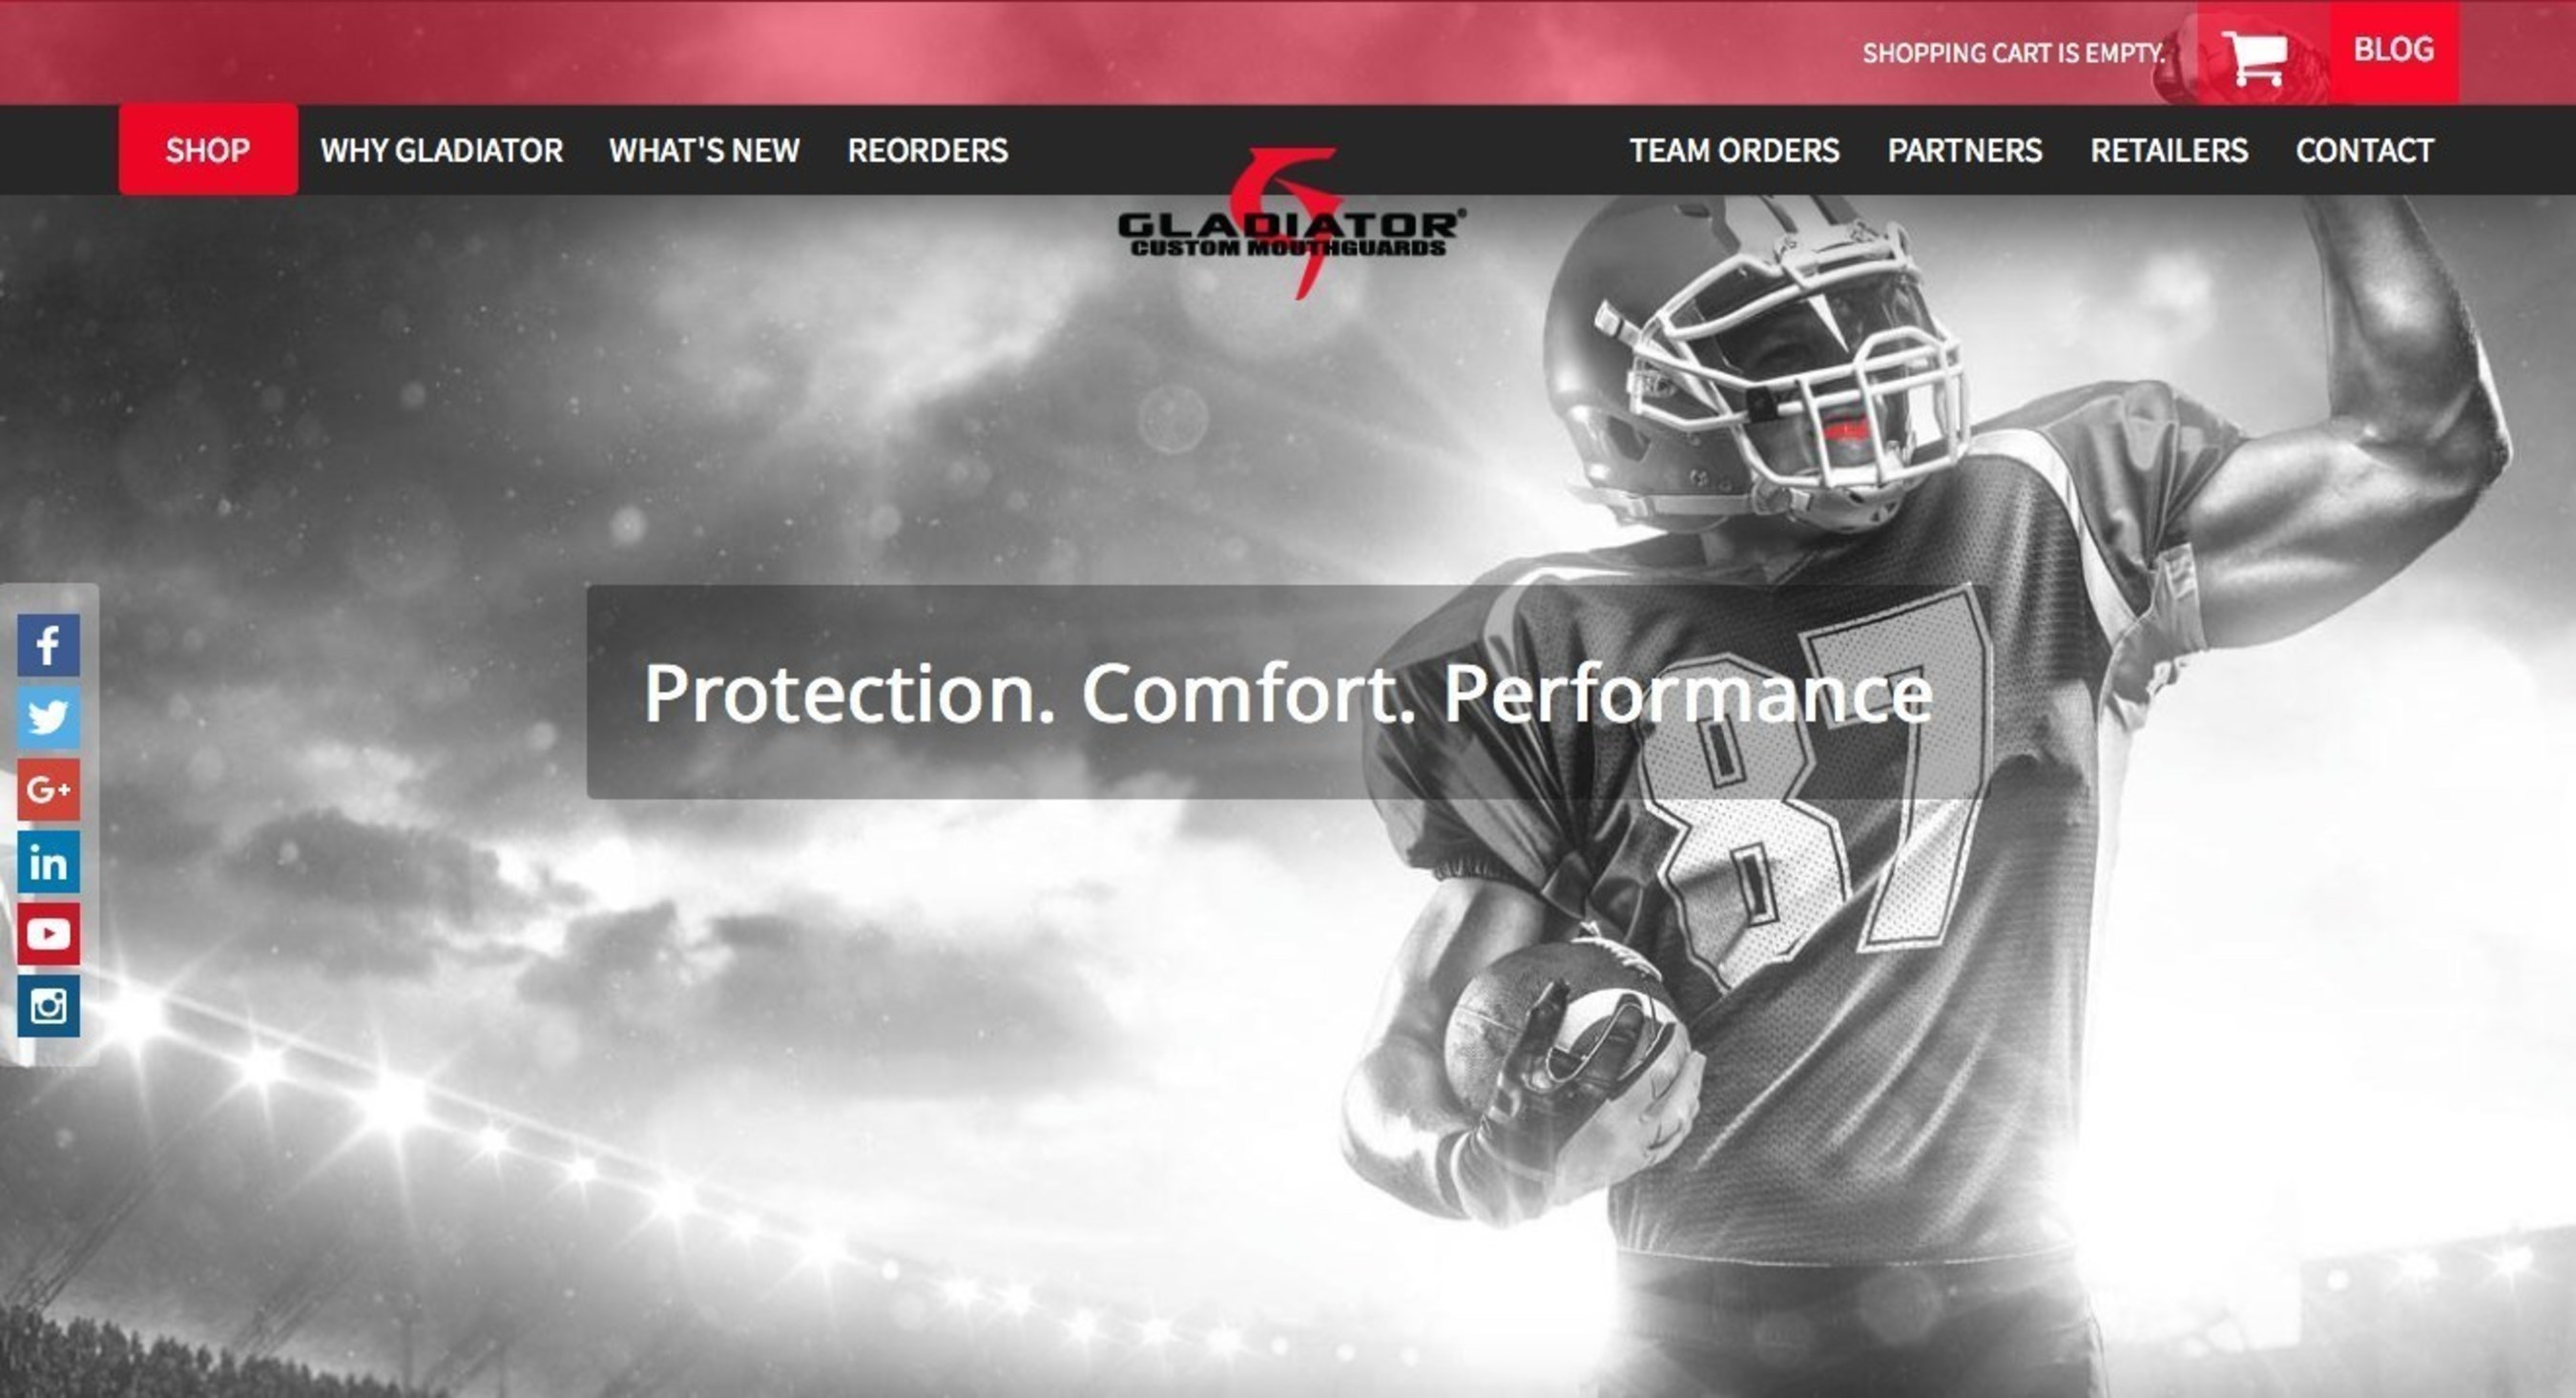 Newly-Designed Website, Same Expertly-Designed Mouthguards